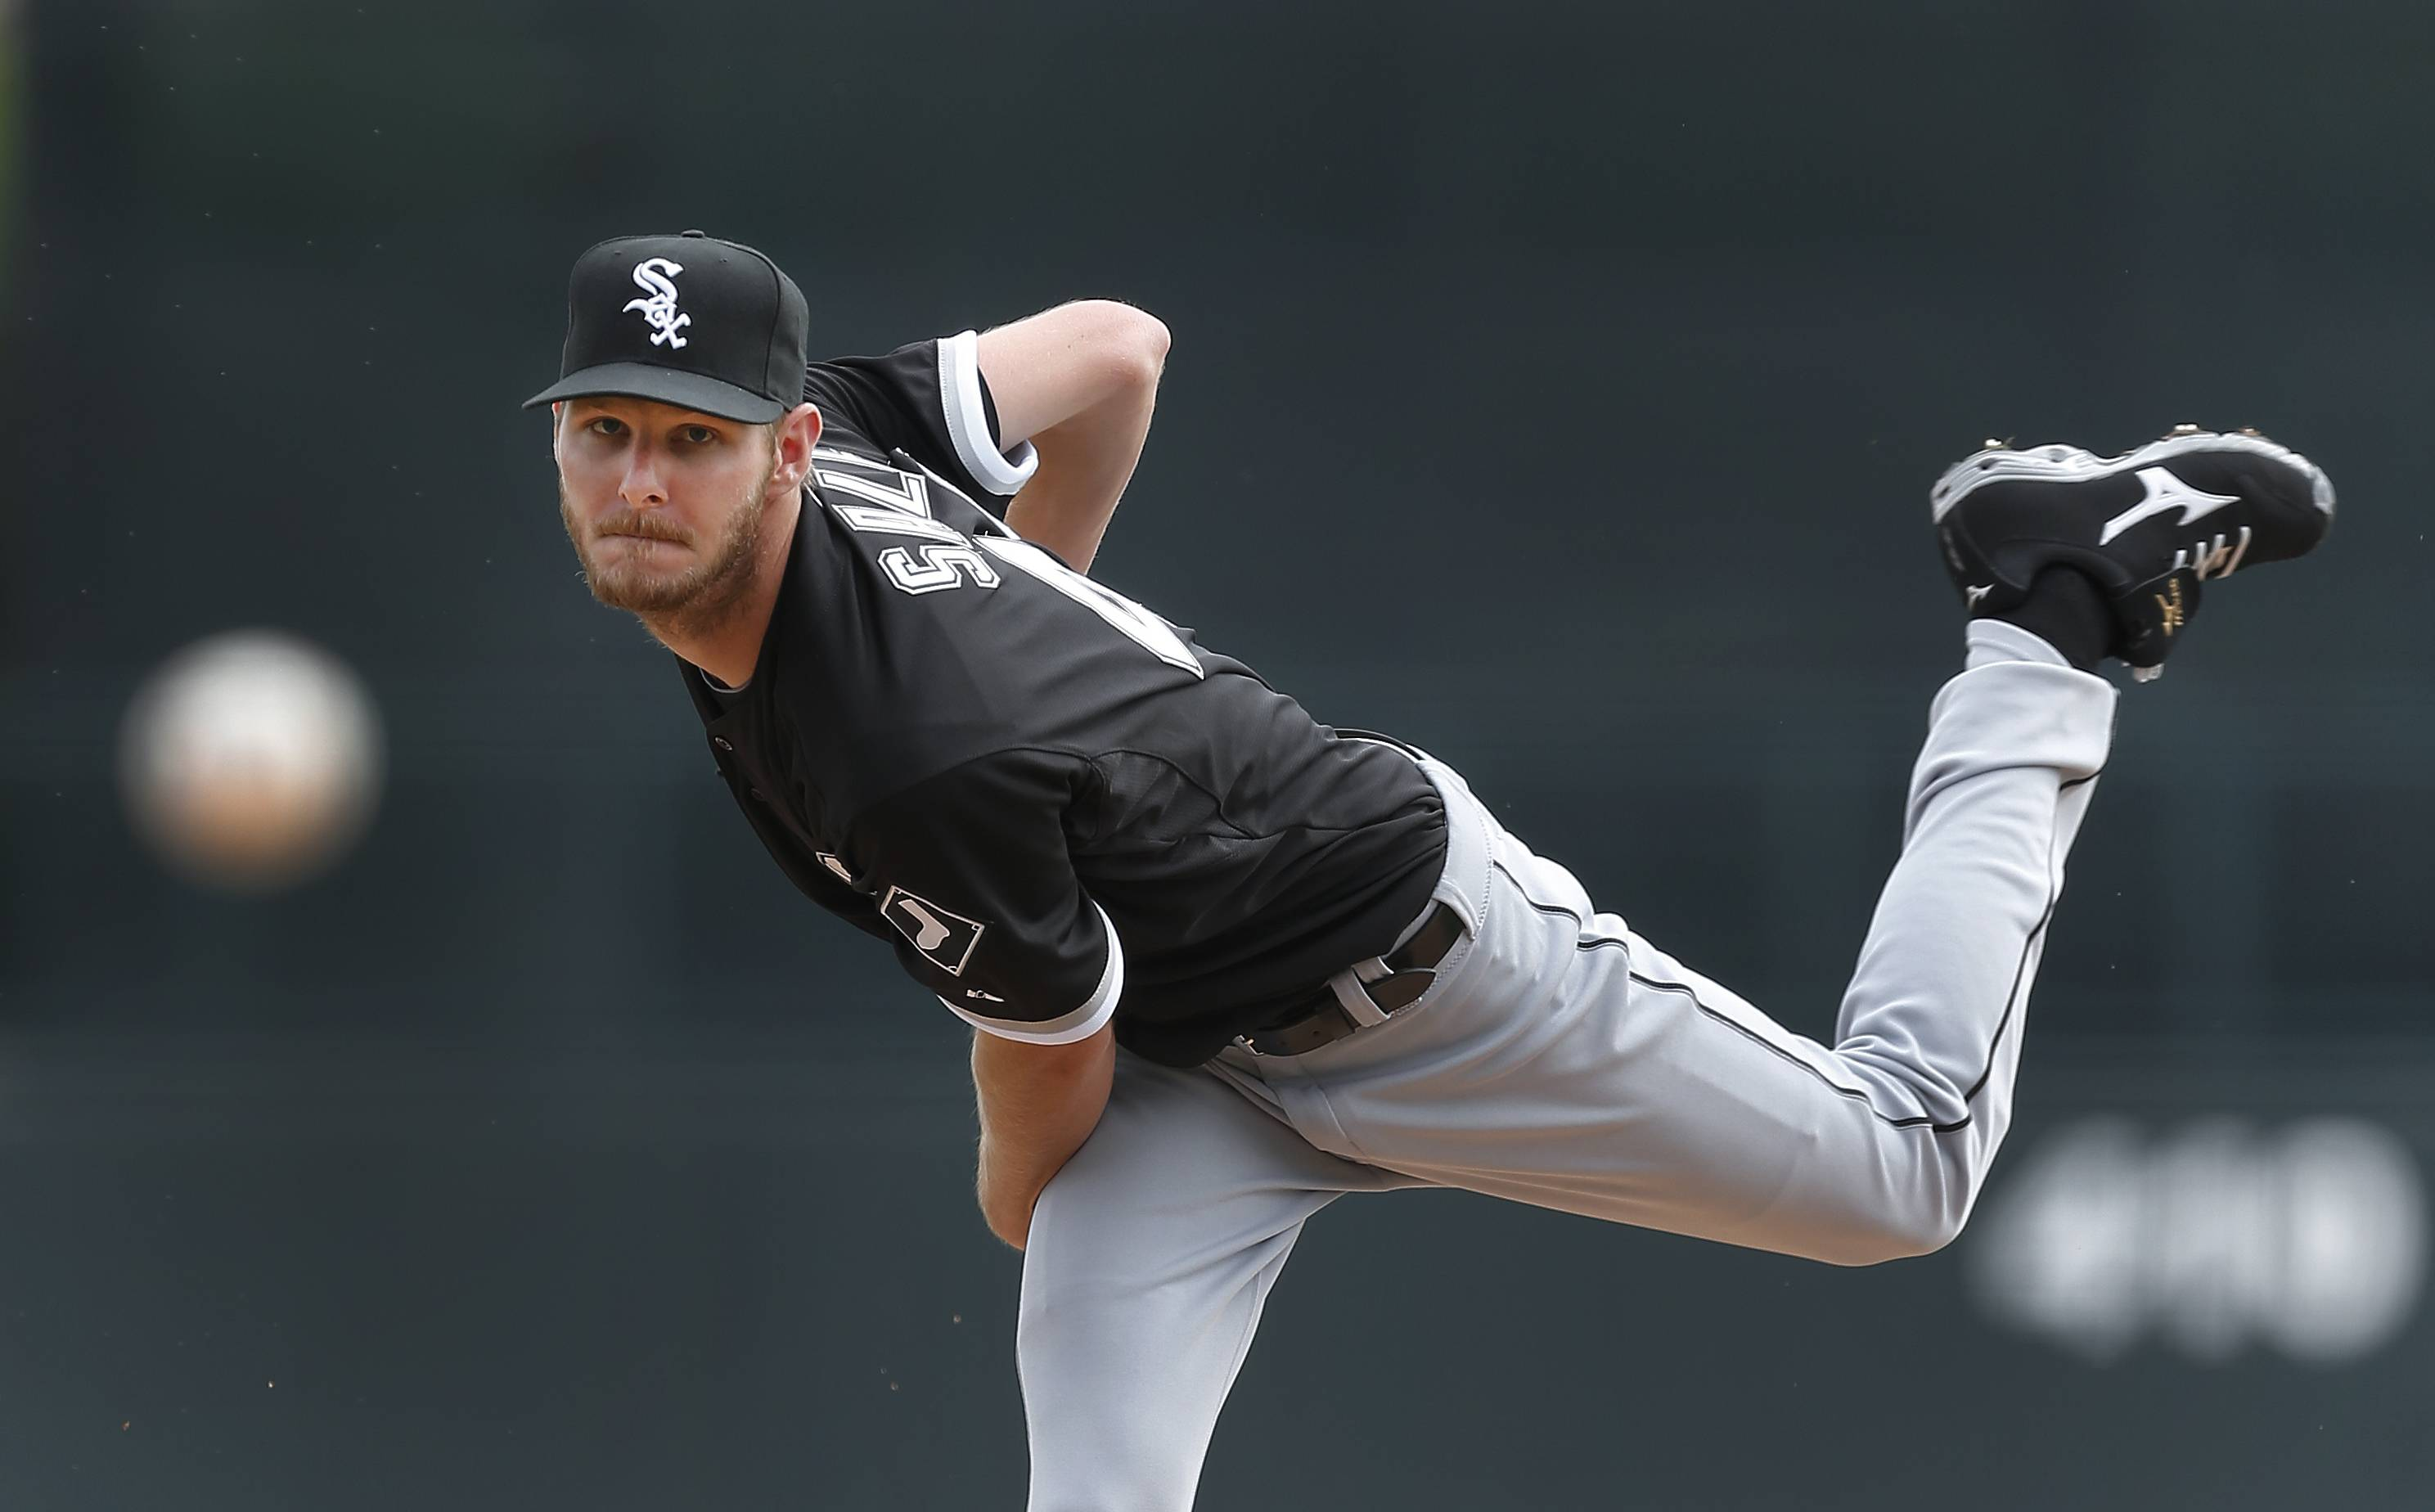 While Chris Sale did go on the disabled list, White Sox fans should remember that he made a combined 59 starts in 2012 and 2013.